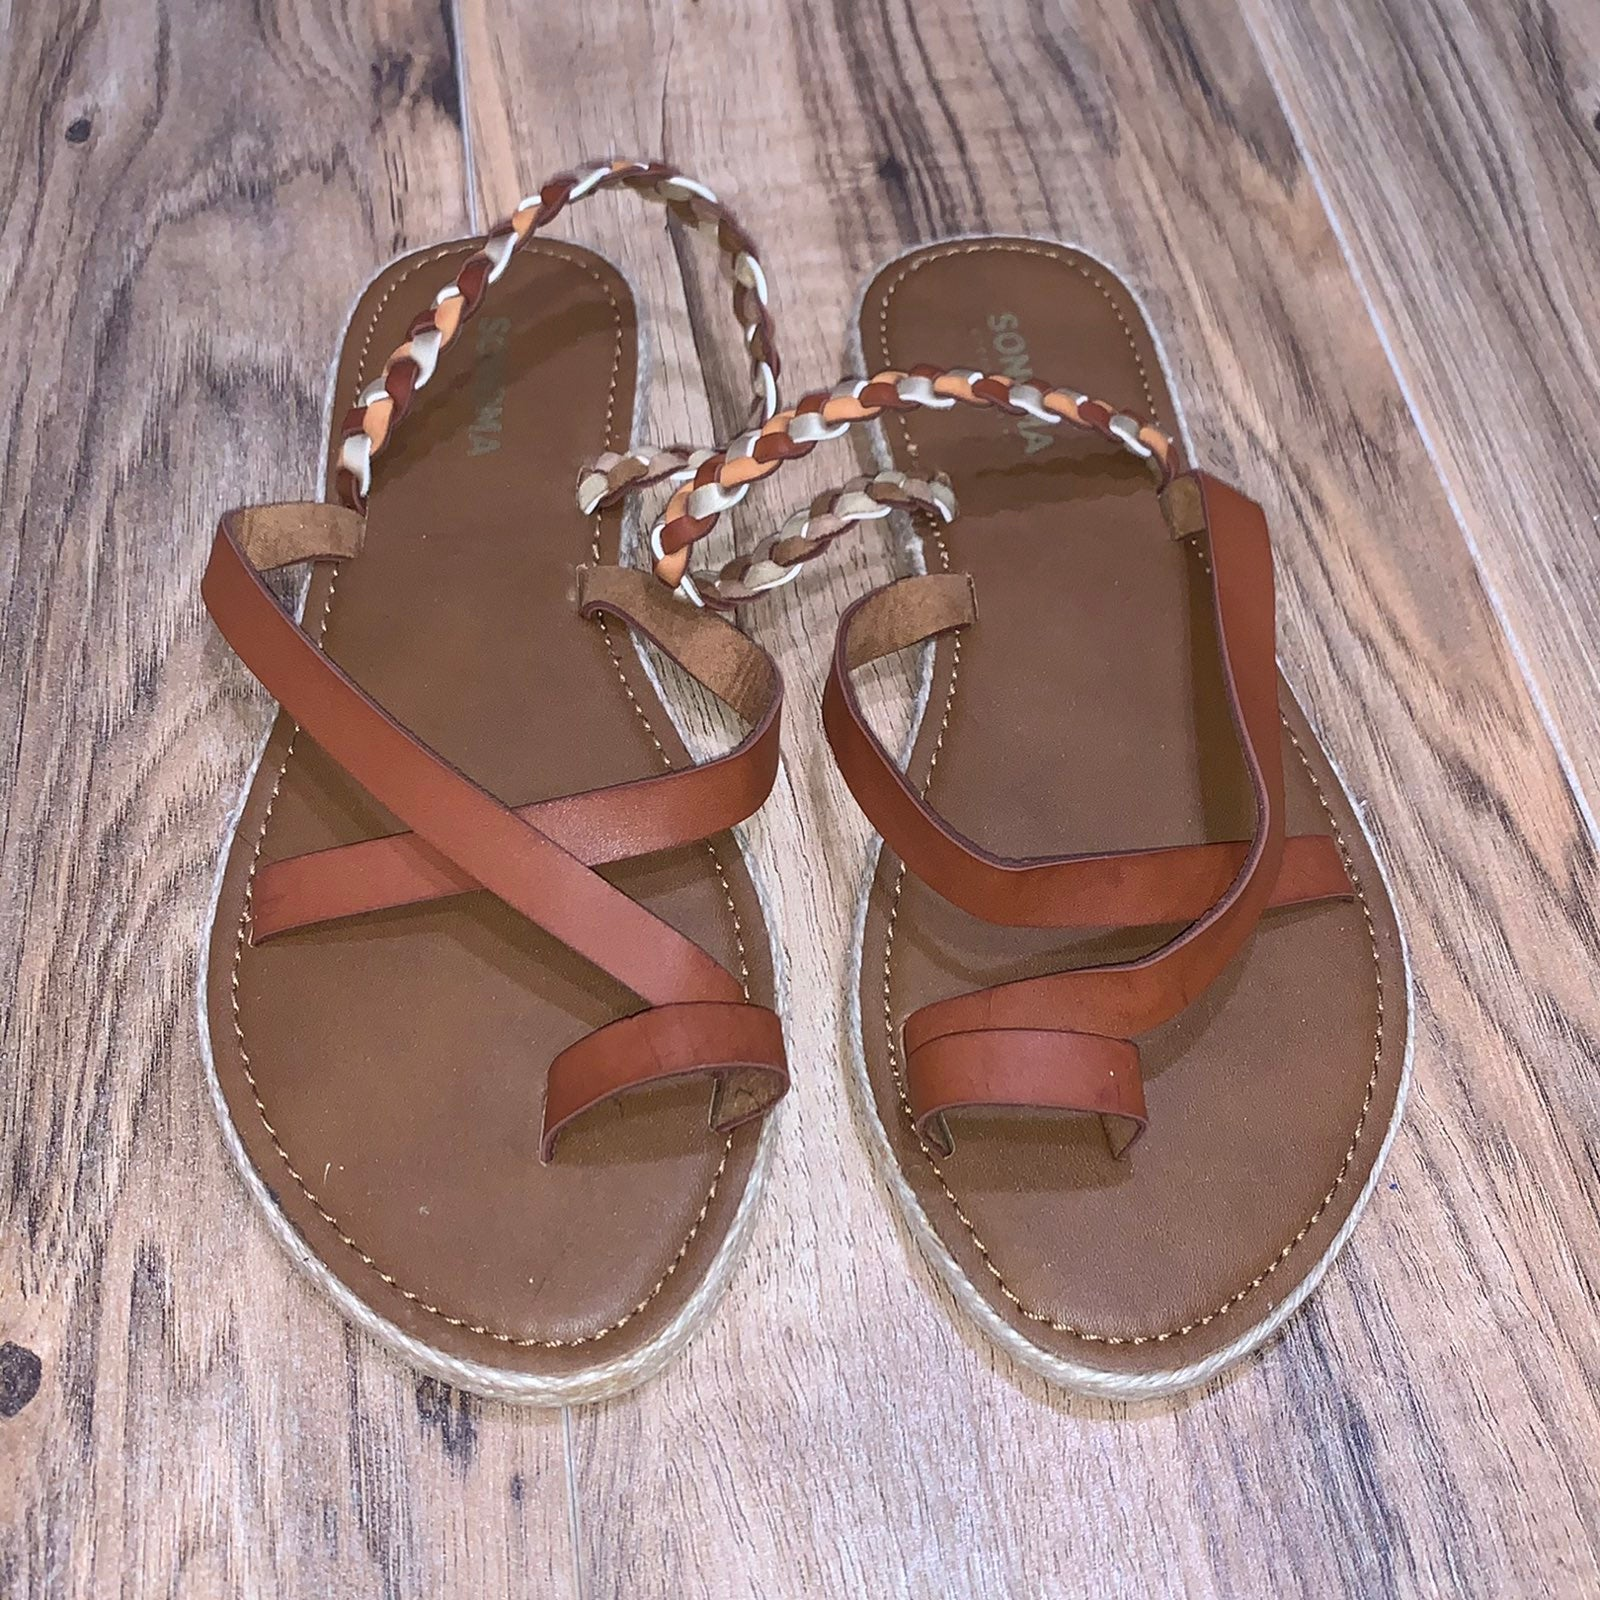 Sonoma brown woven Sandals